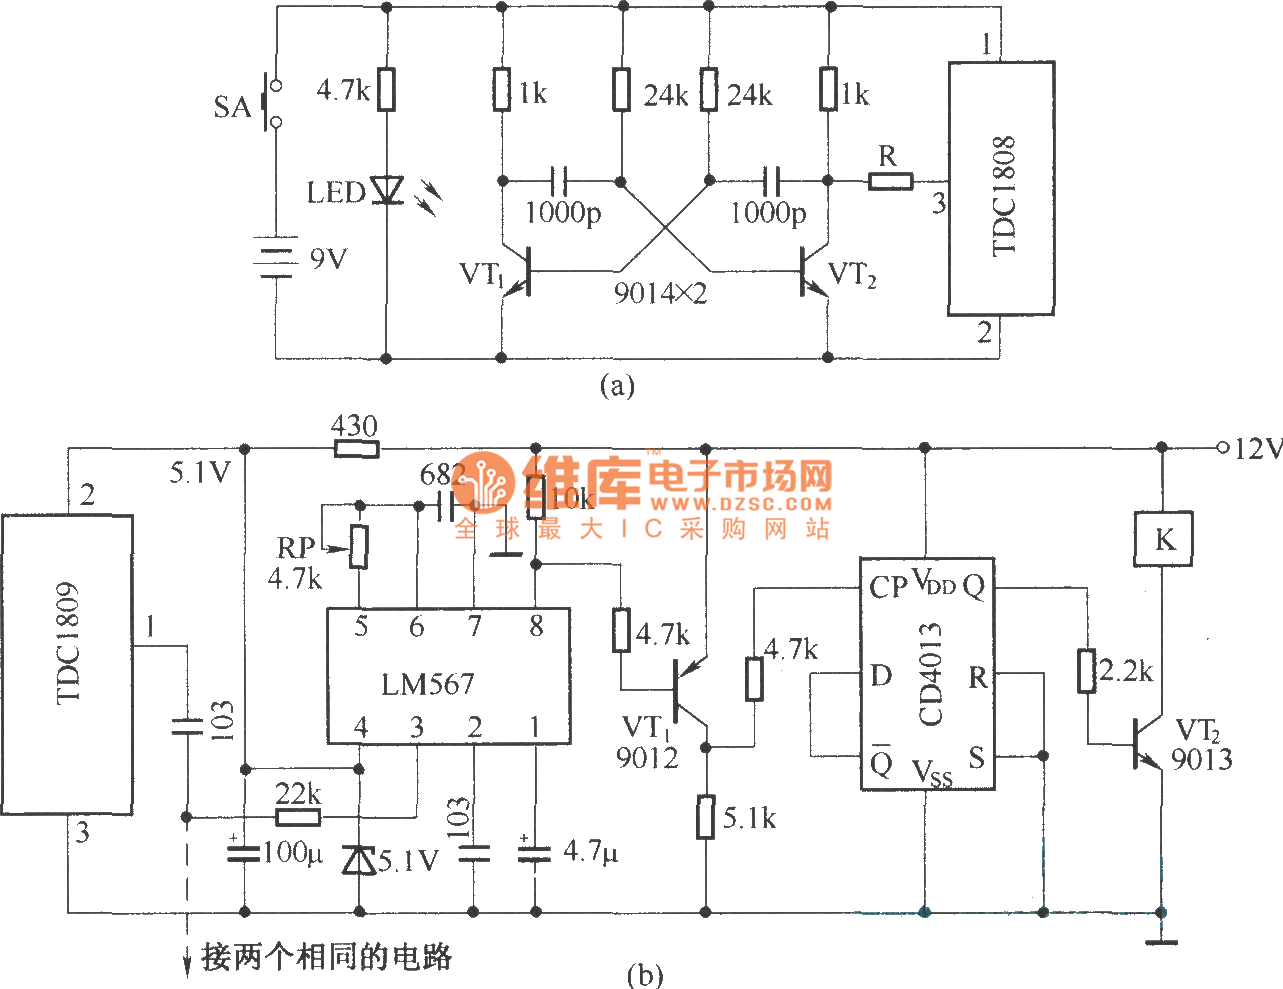 hight resolution of wireless remote control car circuit diagrams wiring diagram img how to make wireless remote control car circuit diagram wireless remote control car circuit